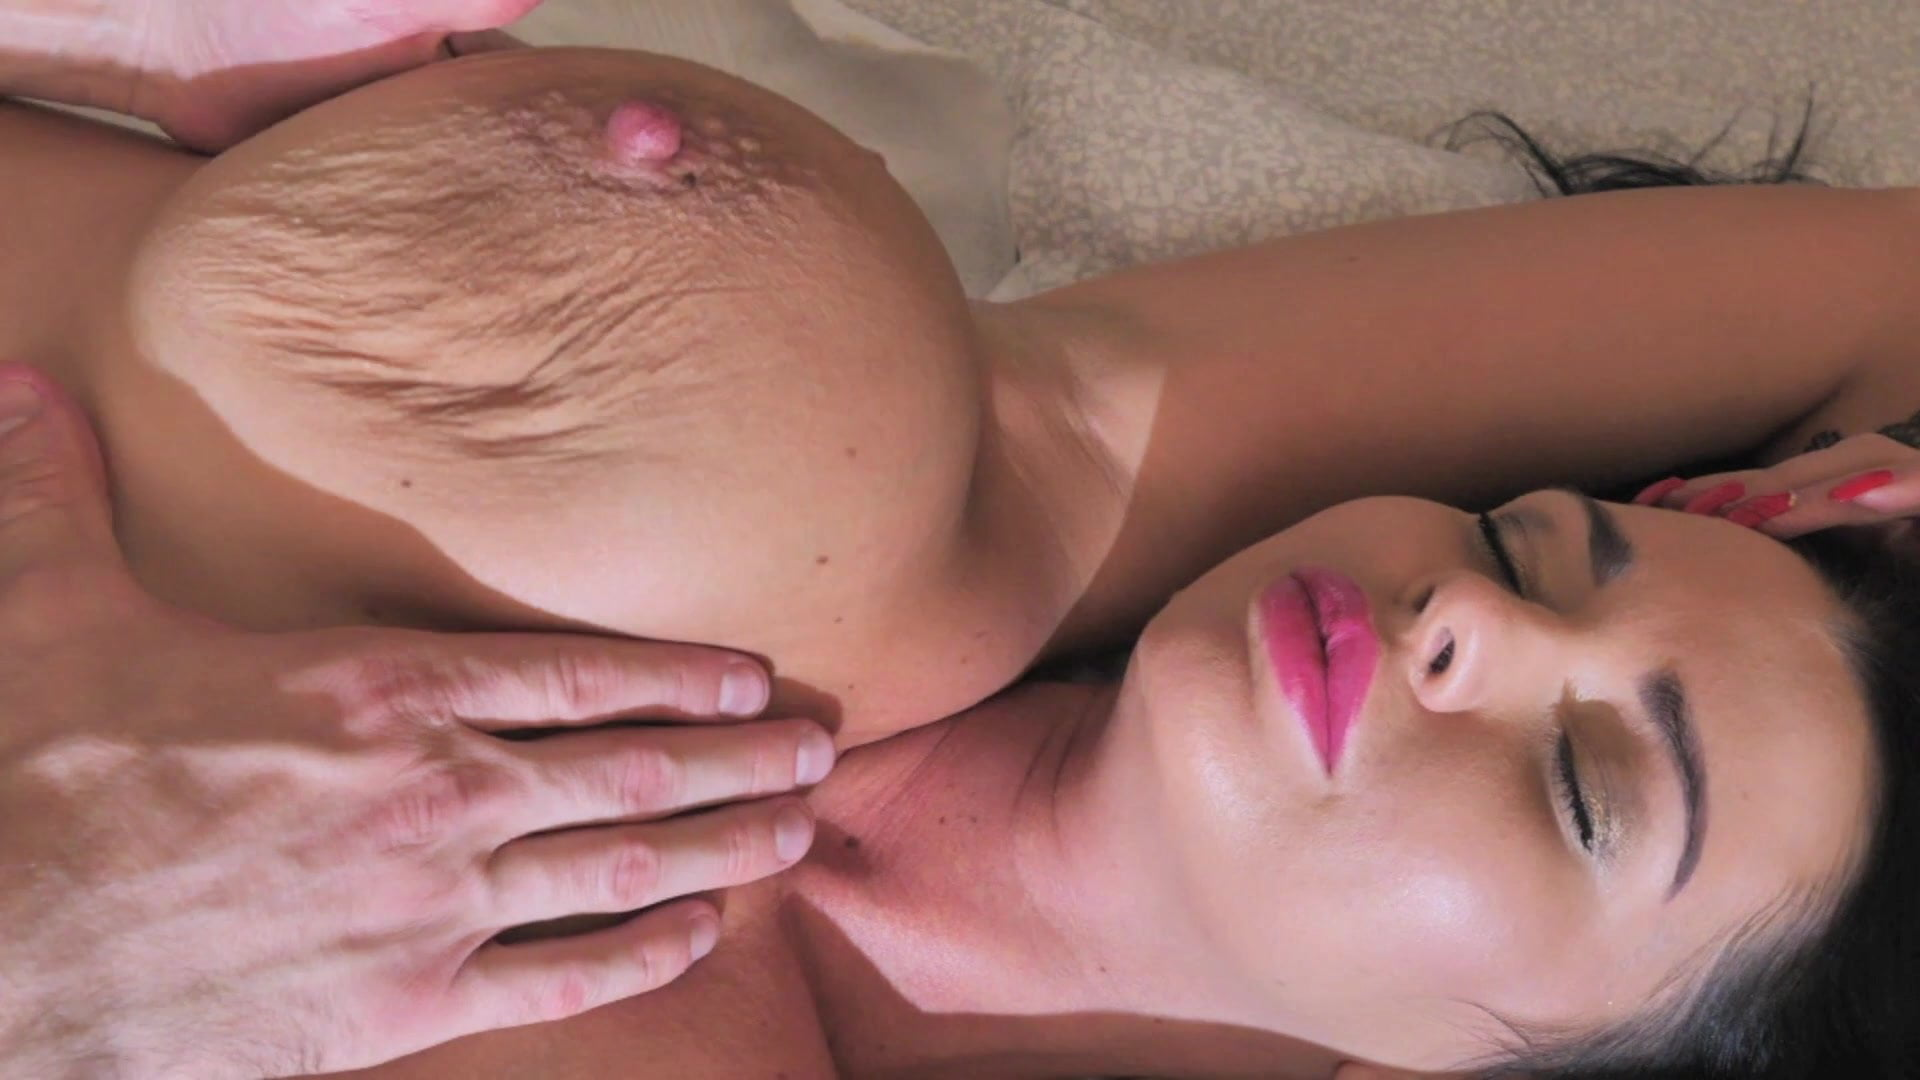 Softcore porn videos for free